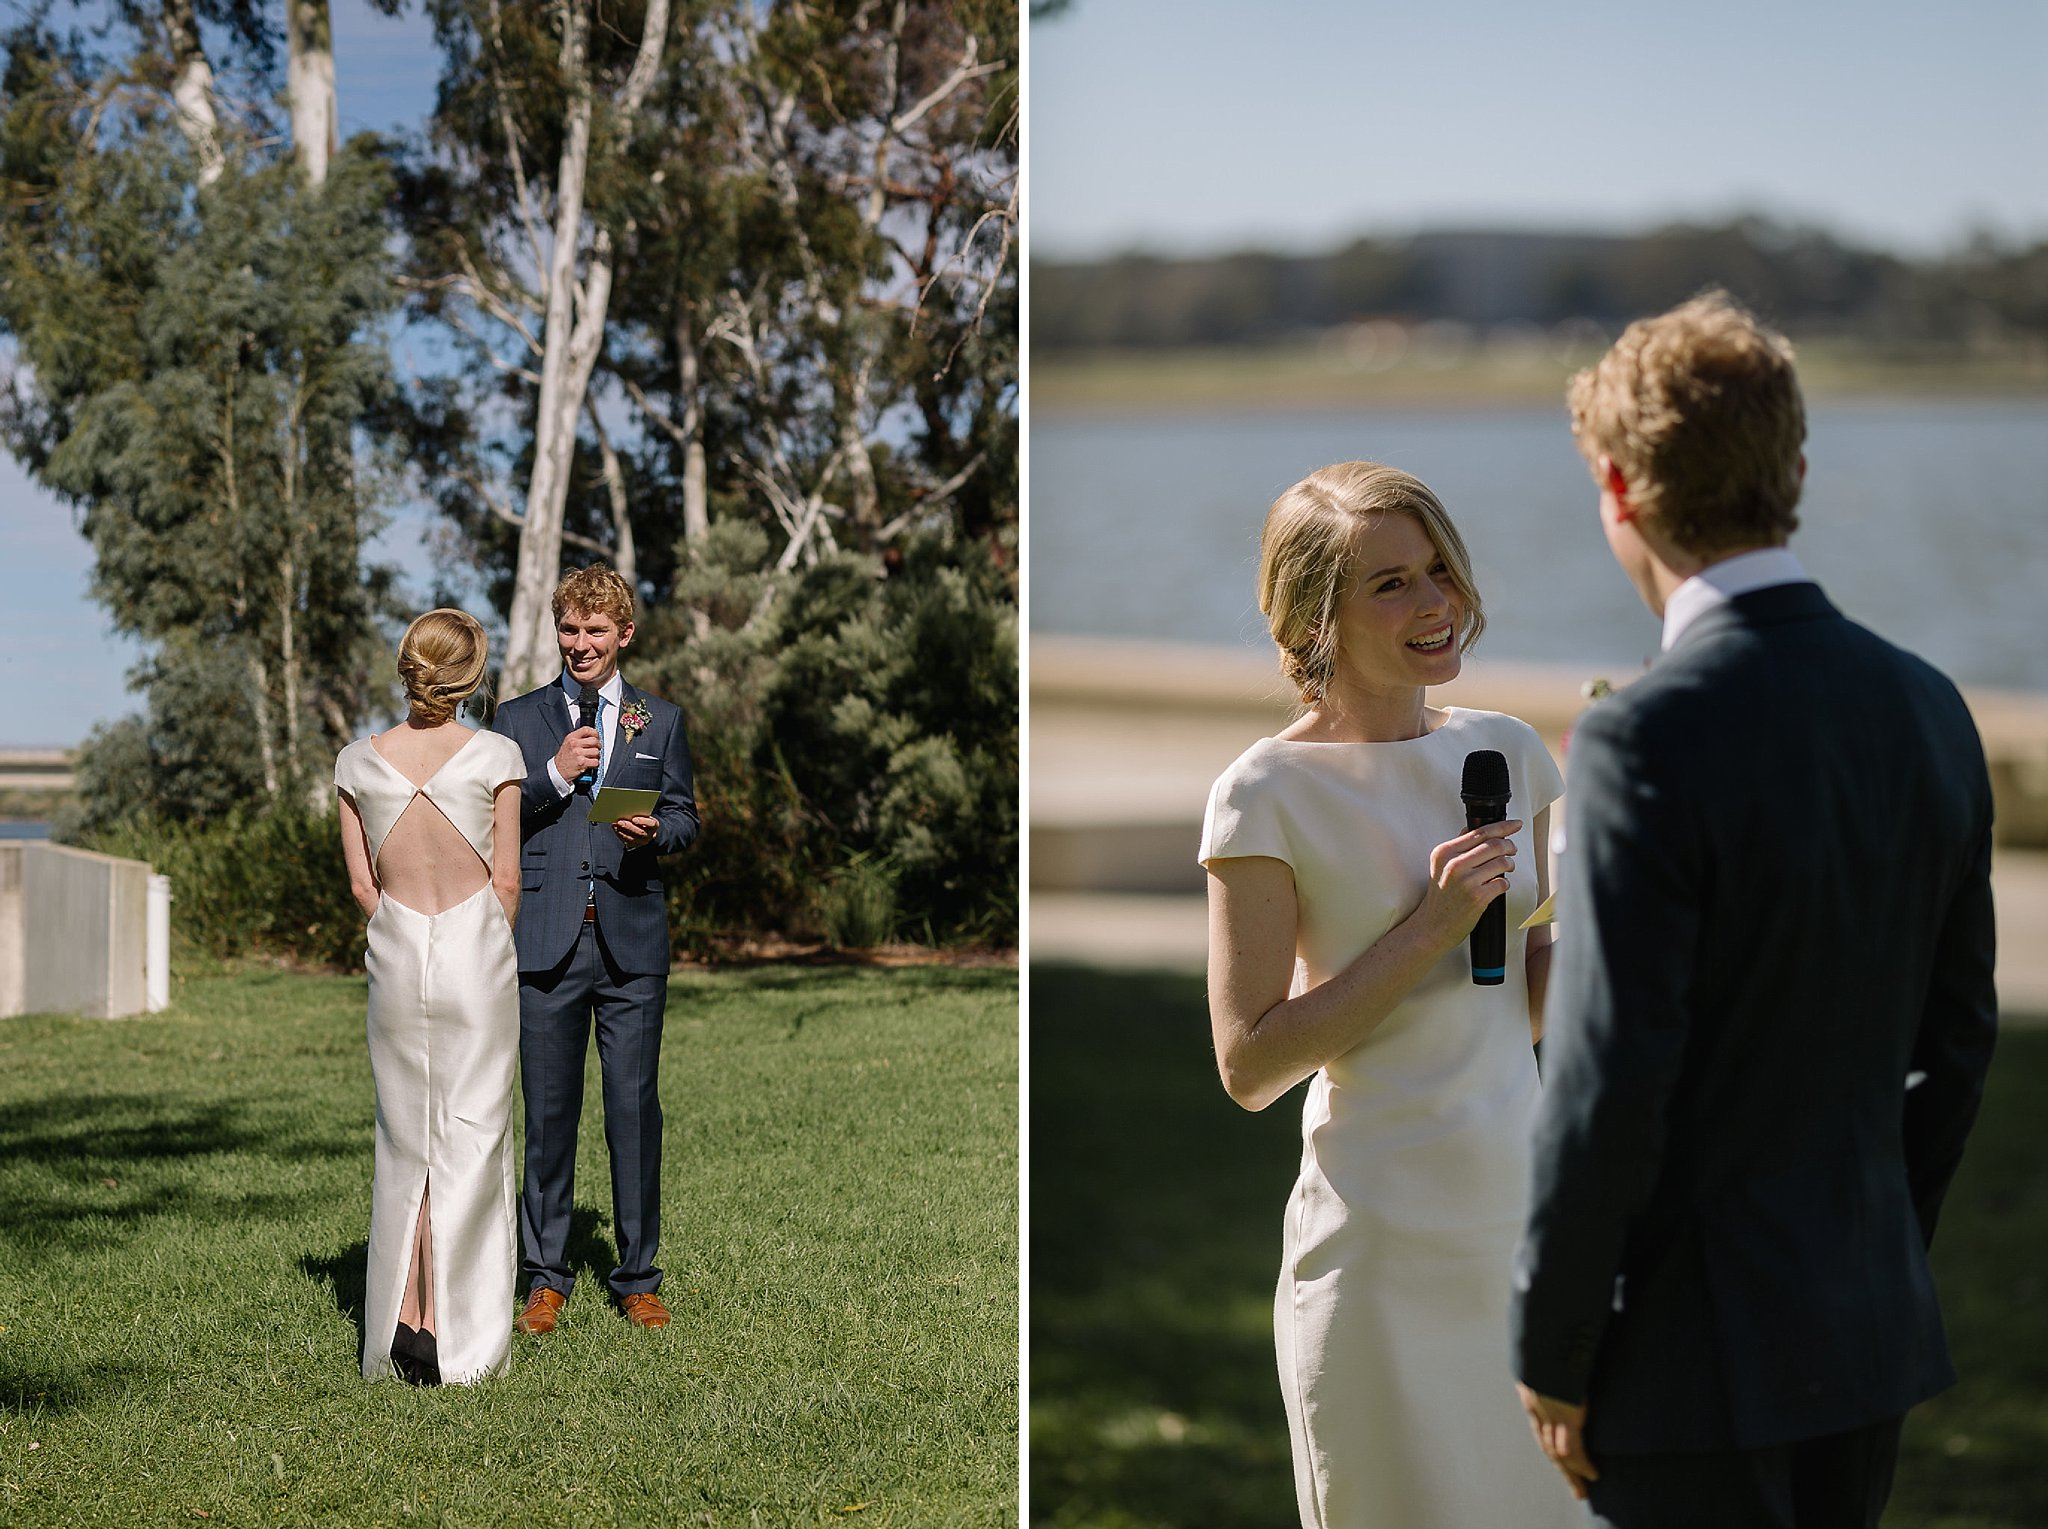 Canberra Photography,Keepsakephoto by the Keeffes,ACT wedding photographer,ACT weddings,NGA,National Gallery of Australia wedding,National Gallery of Australia,Barton flower bar,destination wedding,Sculpture Garden,Sculpture garden wedding,autumn wedding,